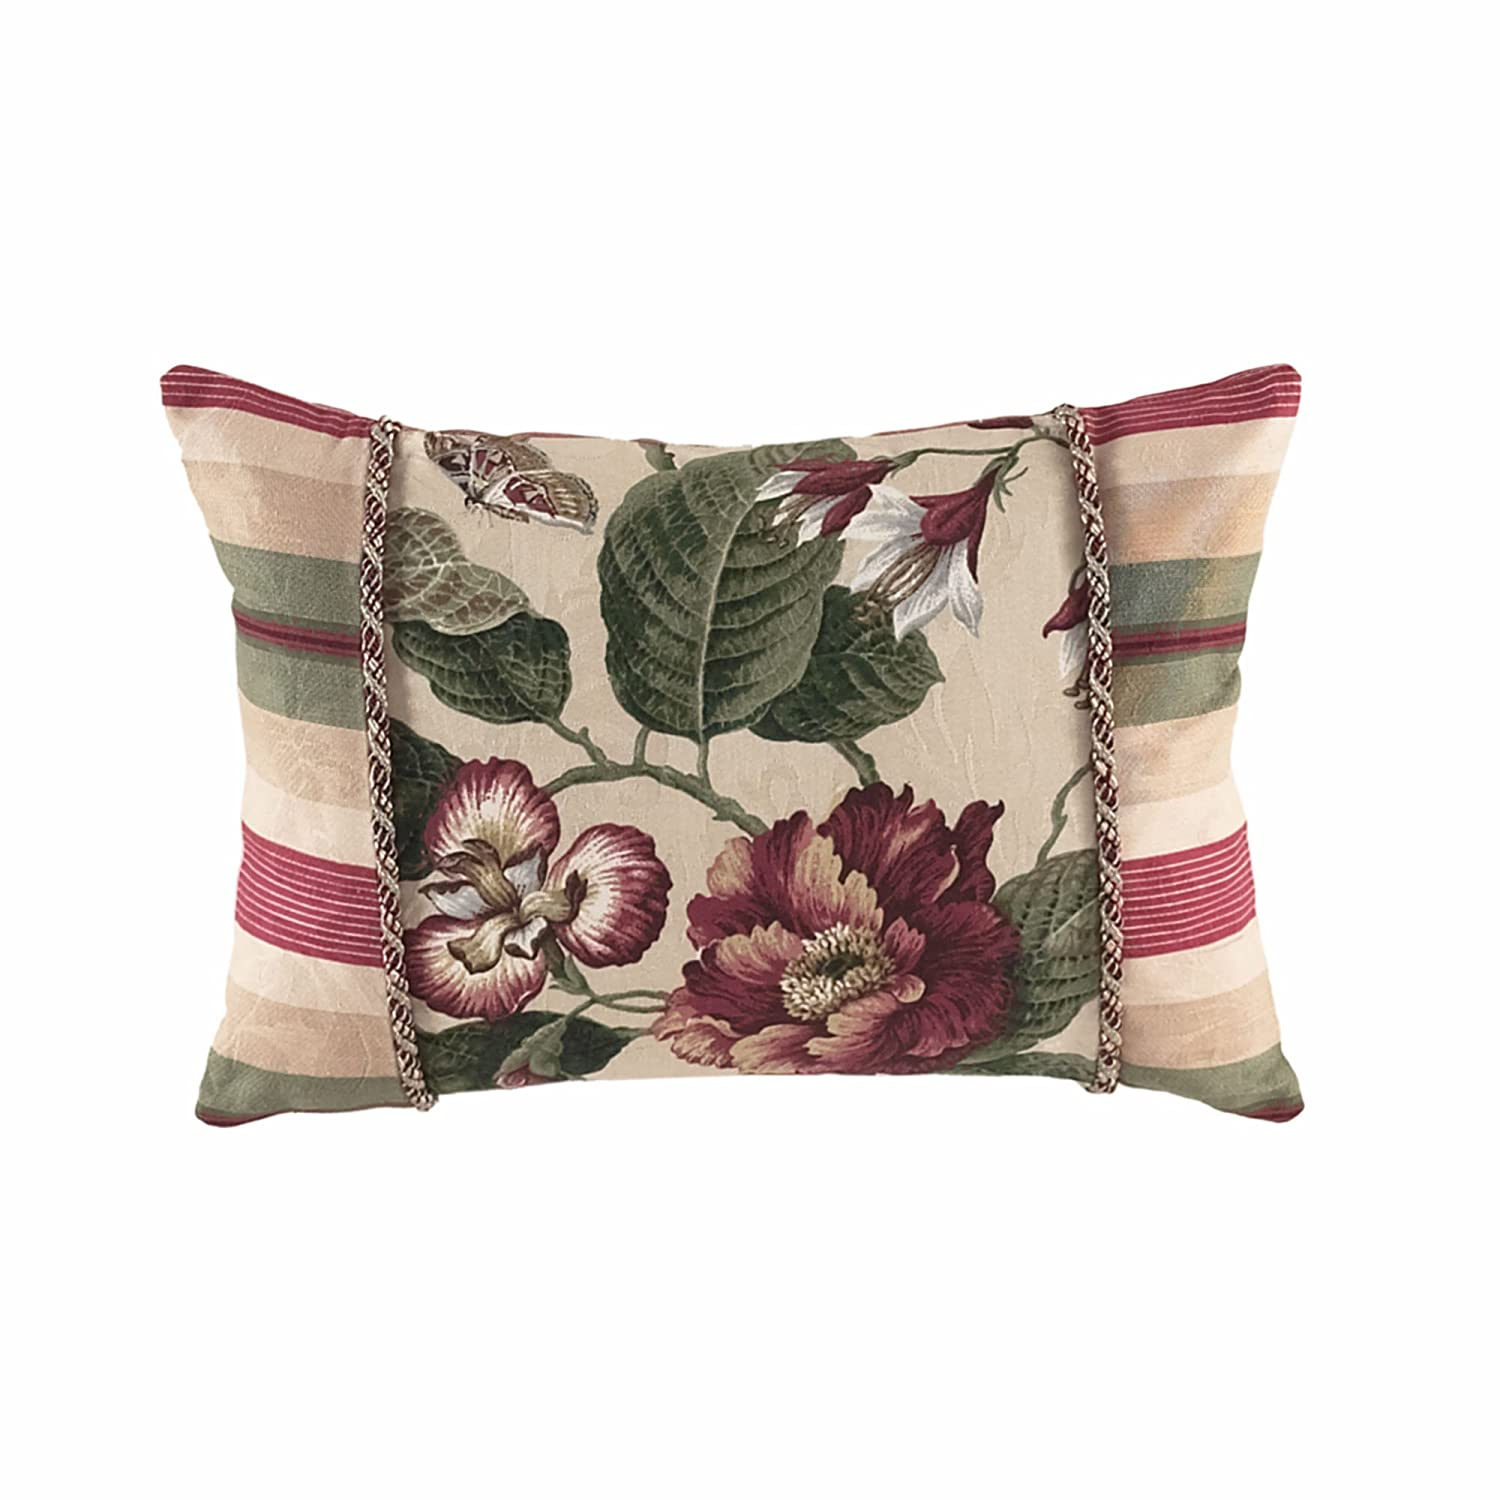 WAVERLY 13156014X020MUL Laurel Springs 20-Inch by 14-Inch Oblong Accent Pillow, Multi